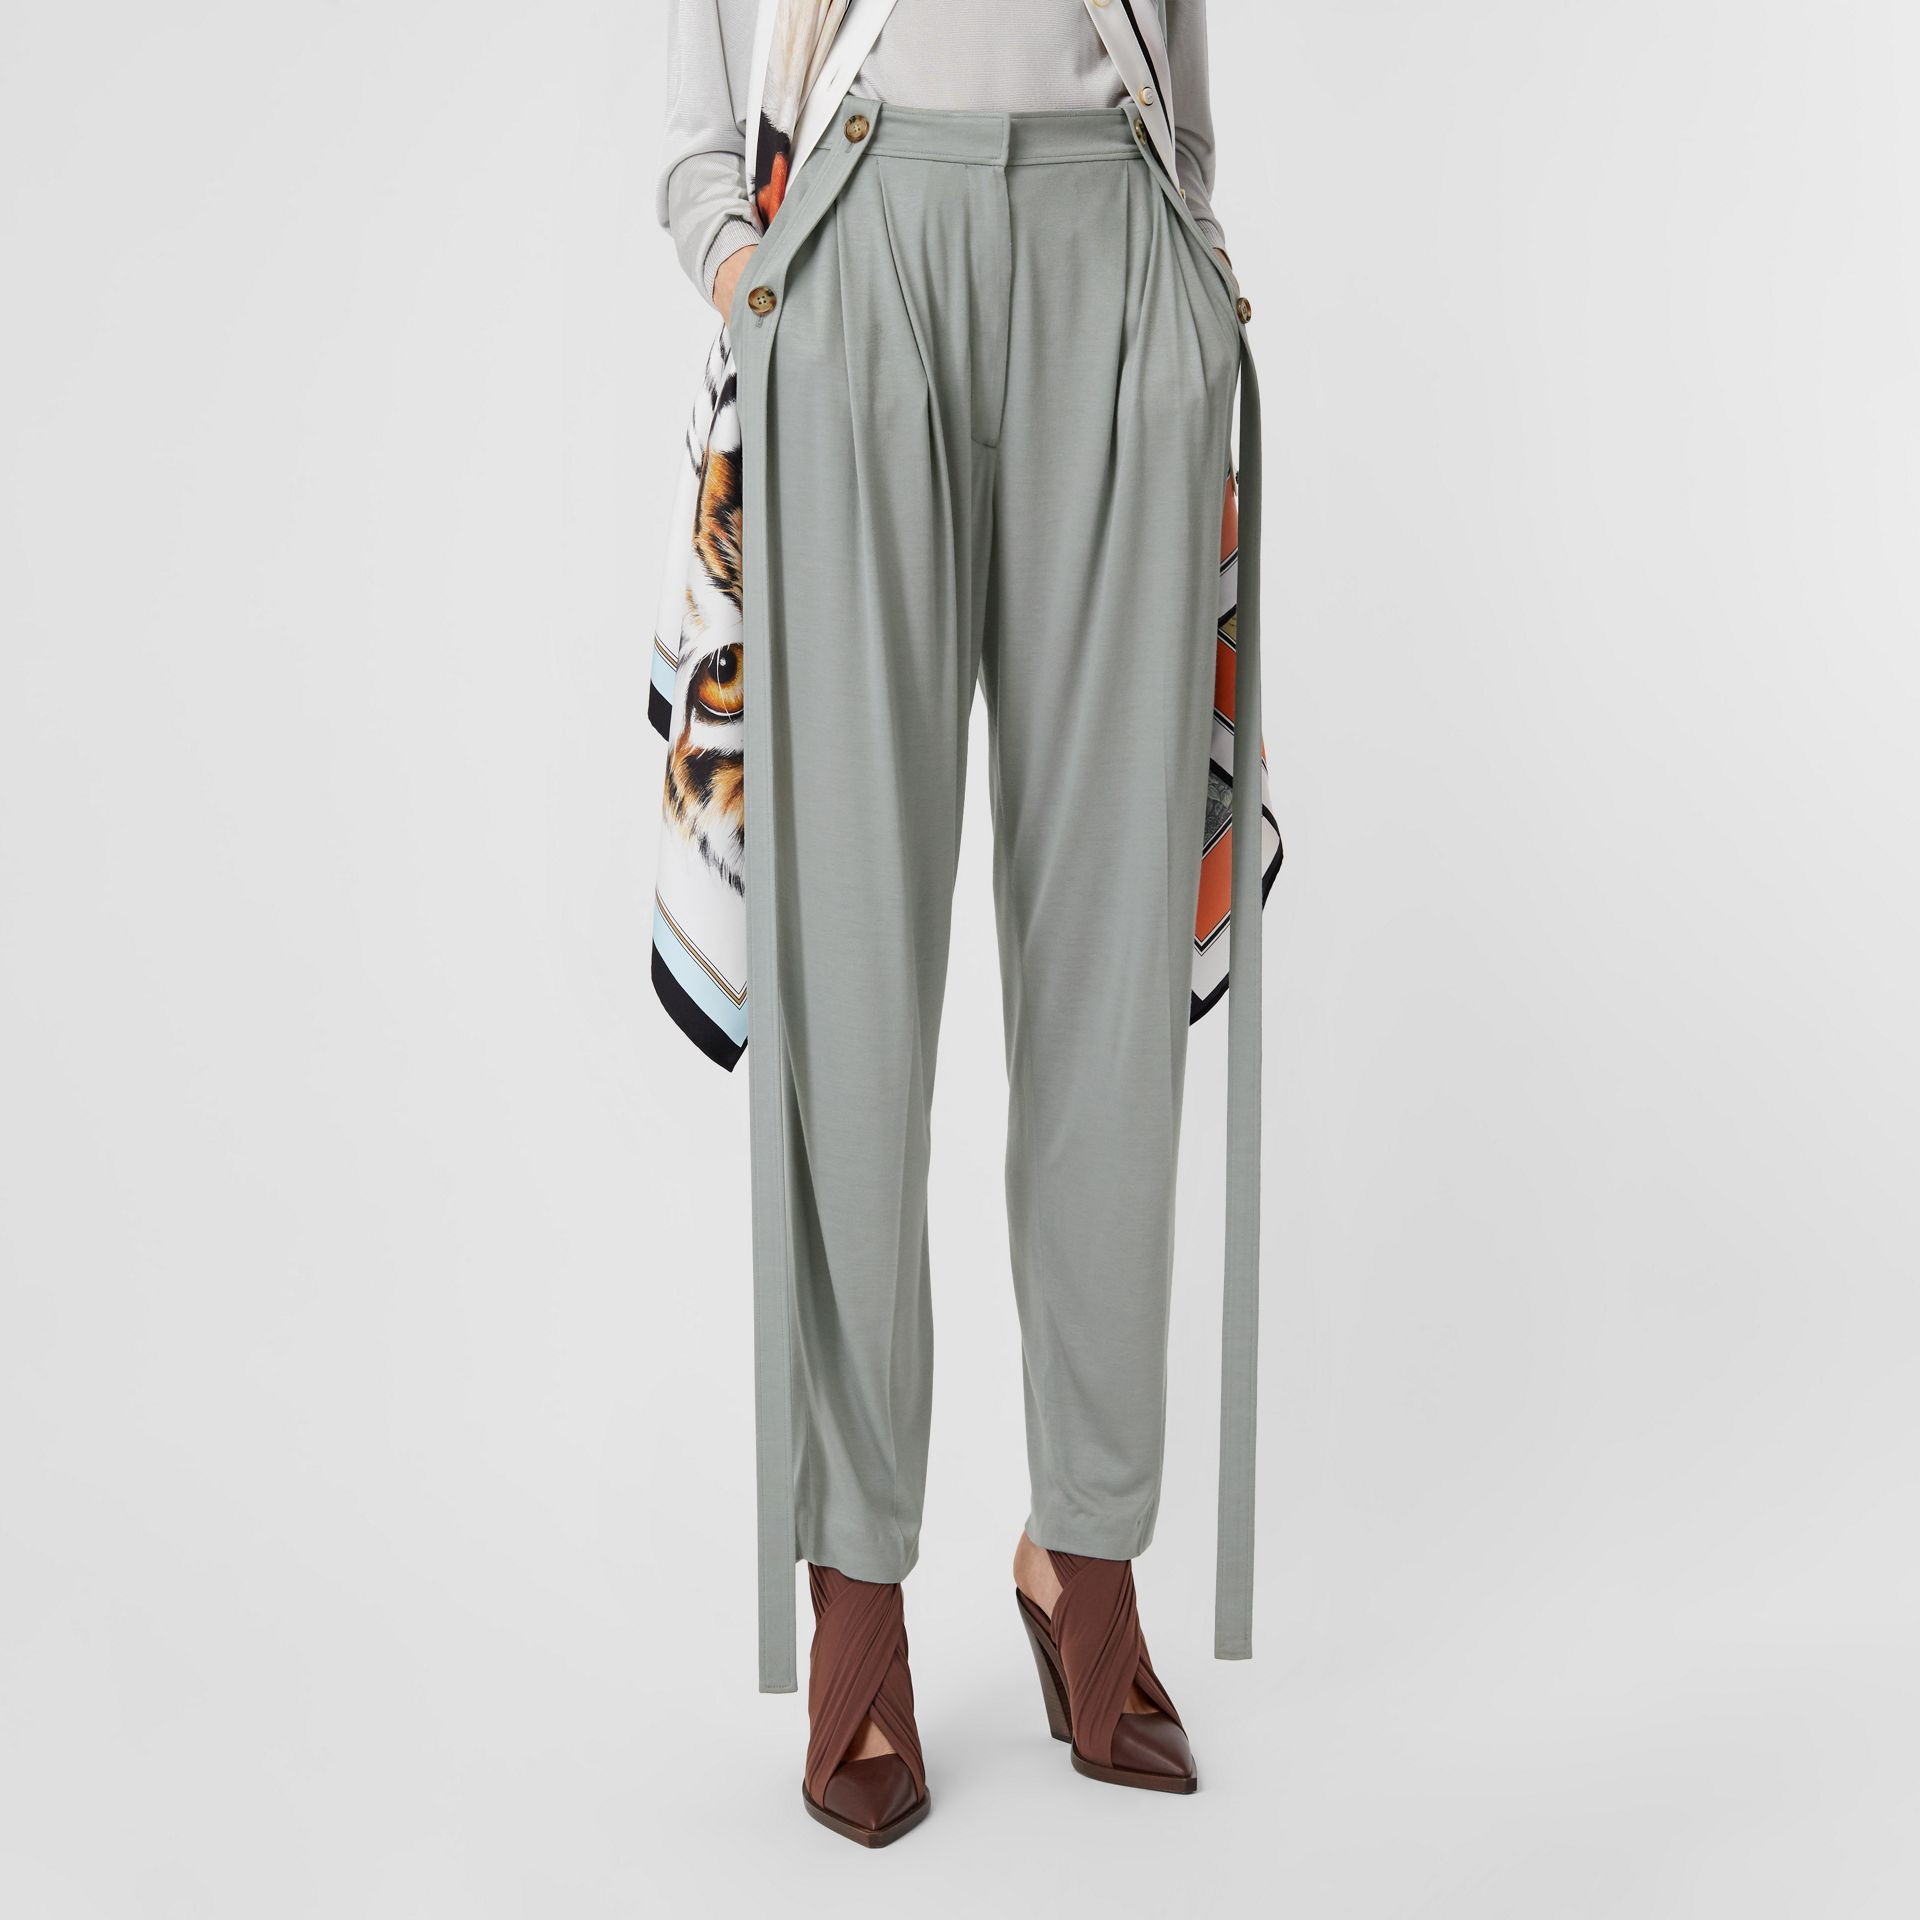 Strap Detail Jersey Tailored Trousers in Heather Melange - Women | Burberry Canada - gallery image 4